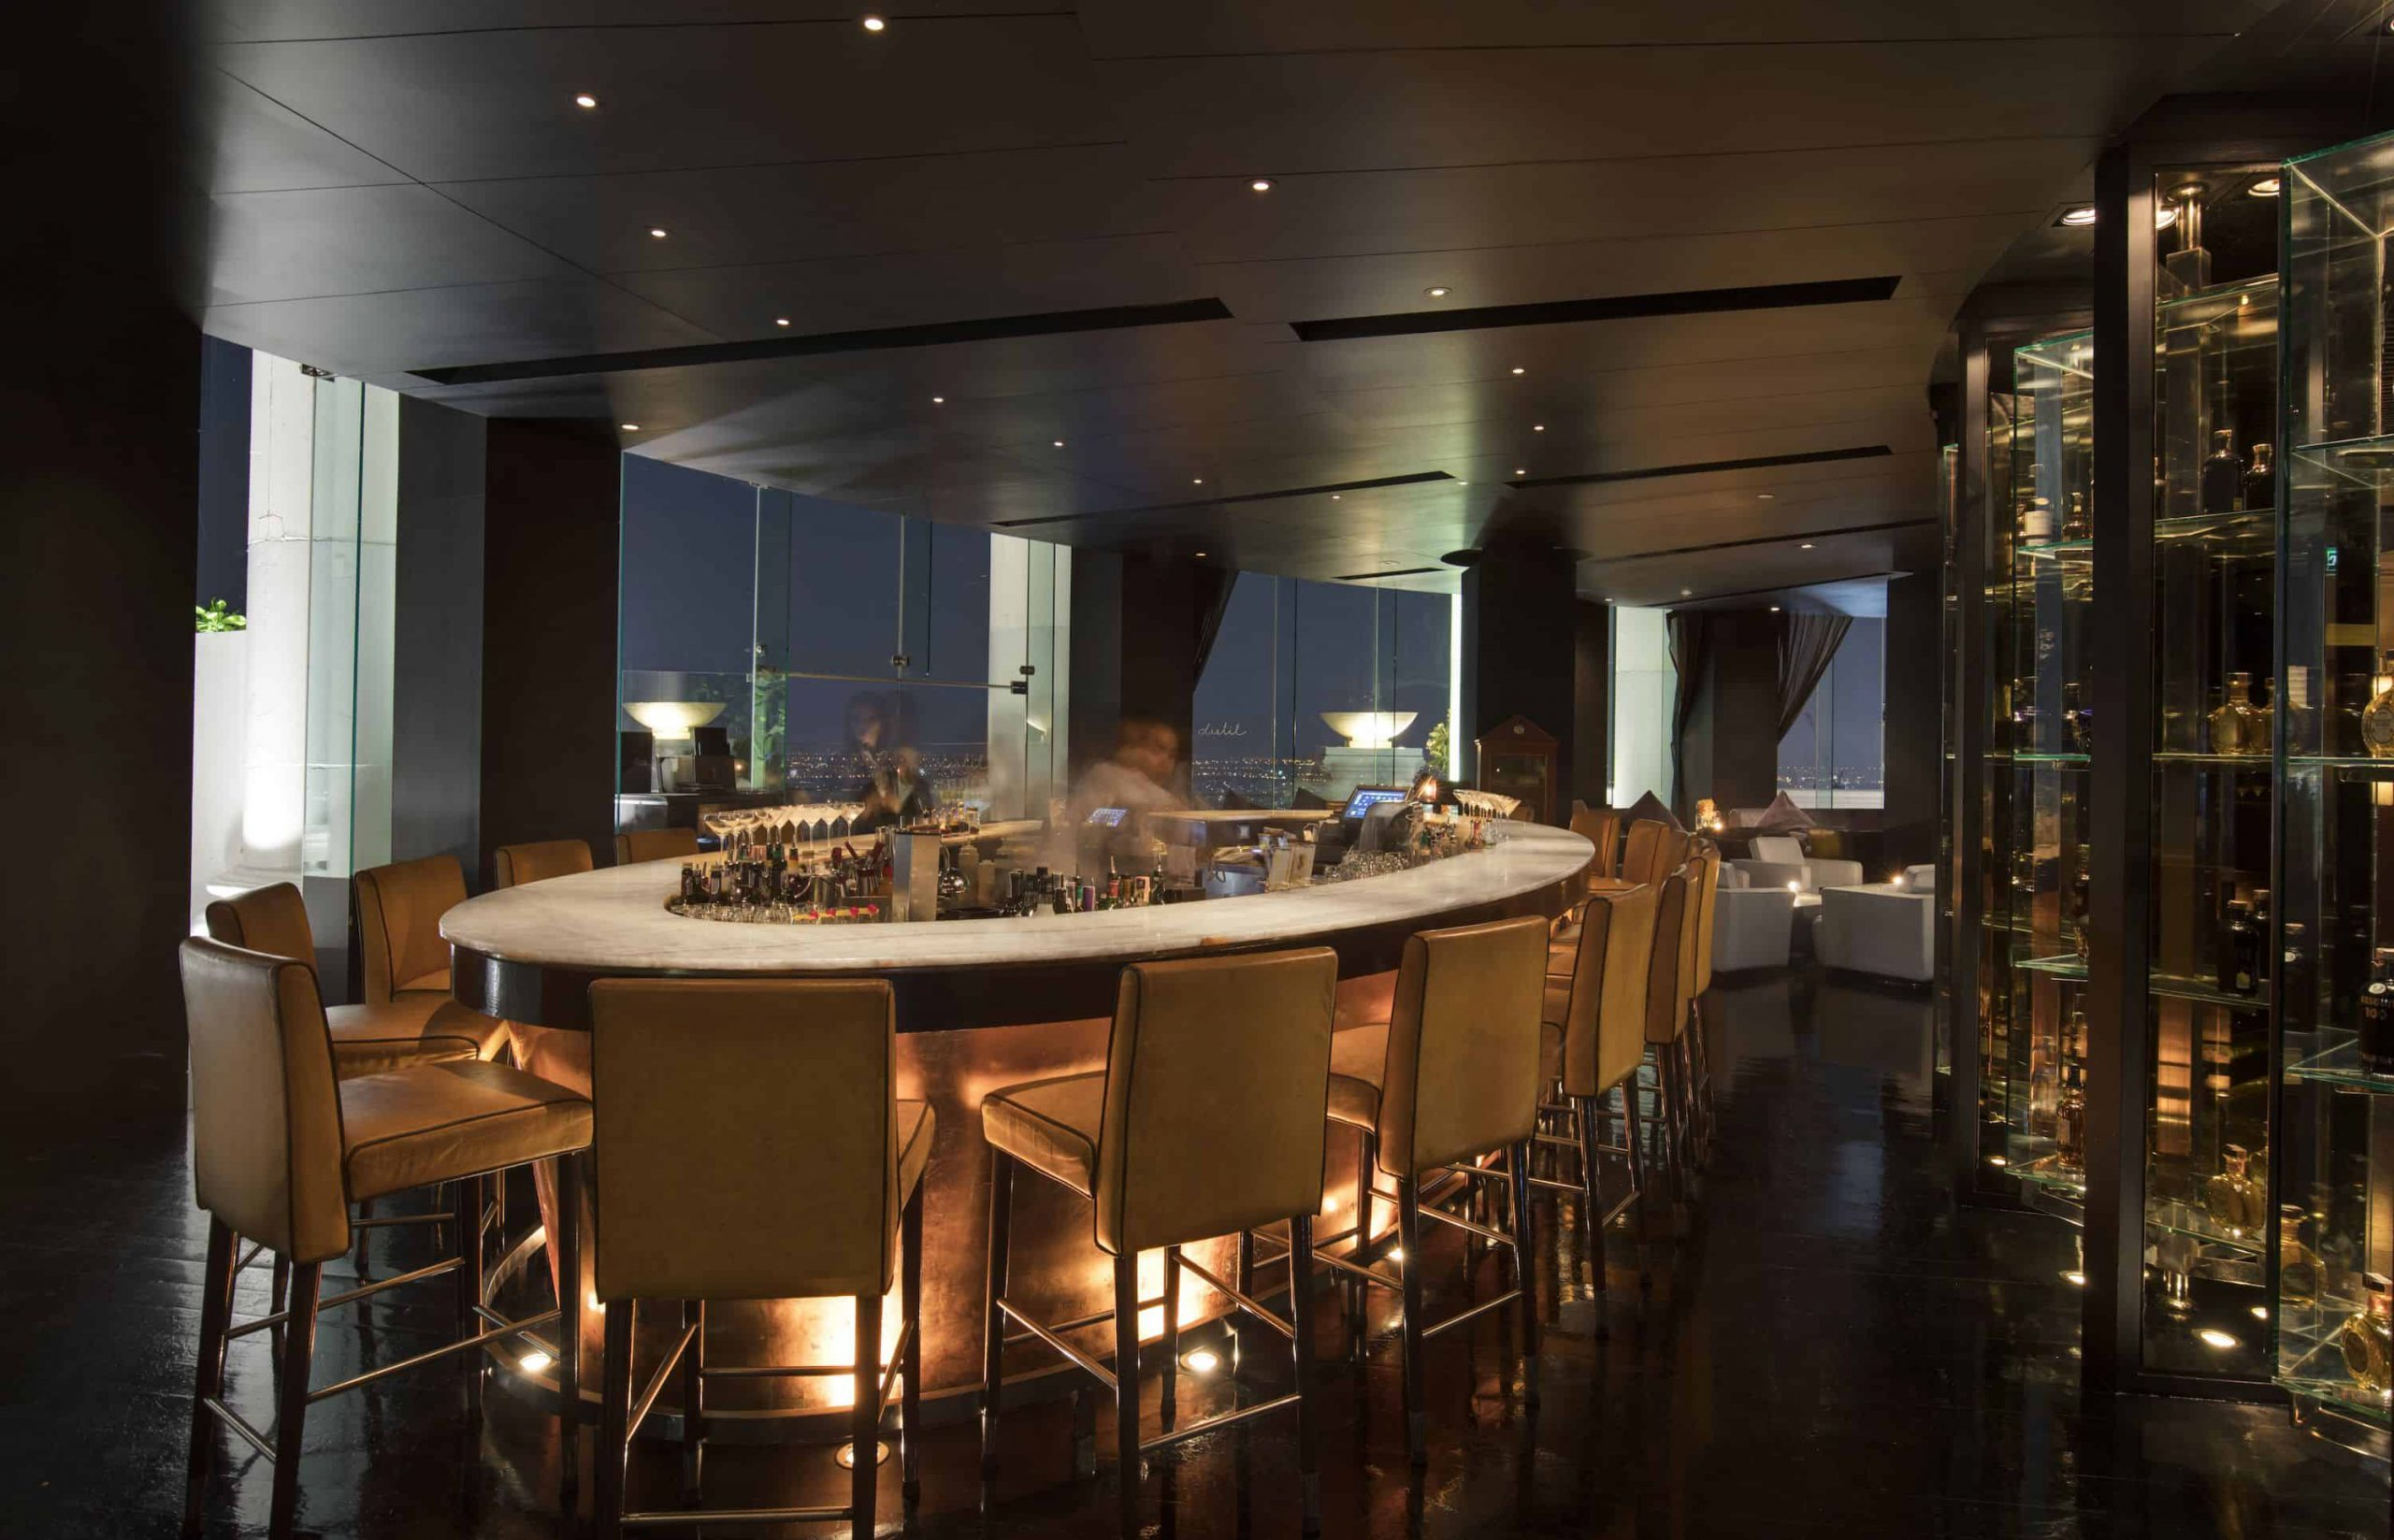 rish shaped bar with aligned stools and high grey ceiling